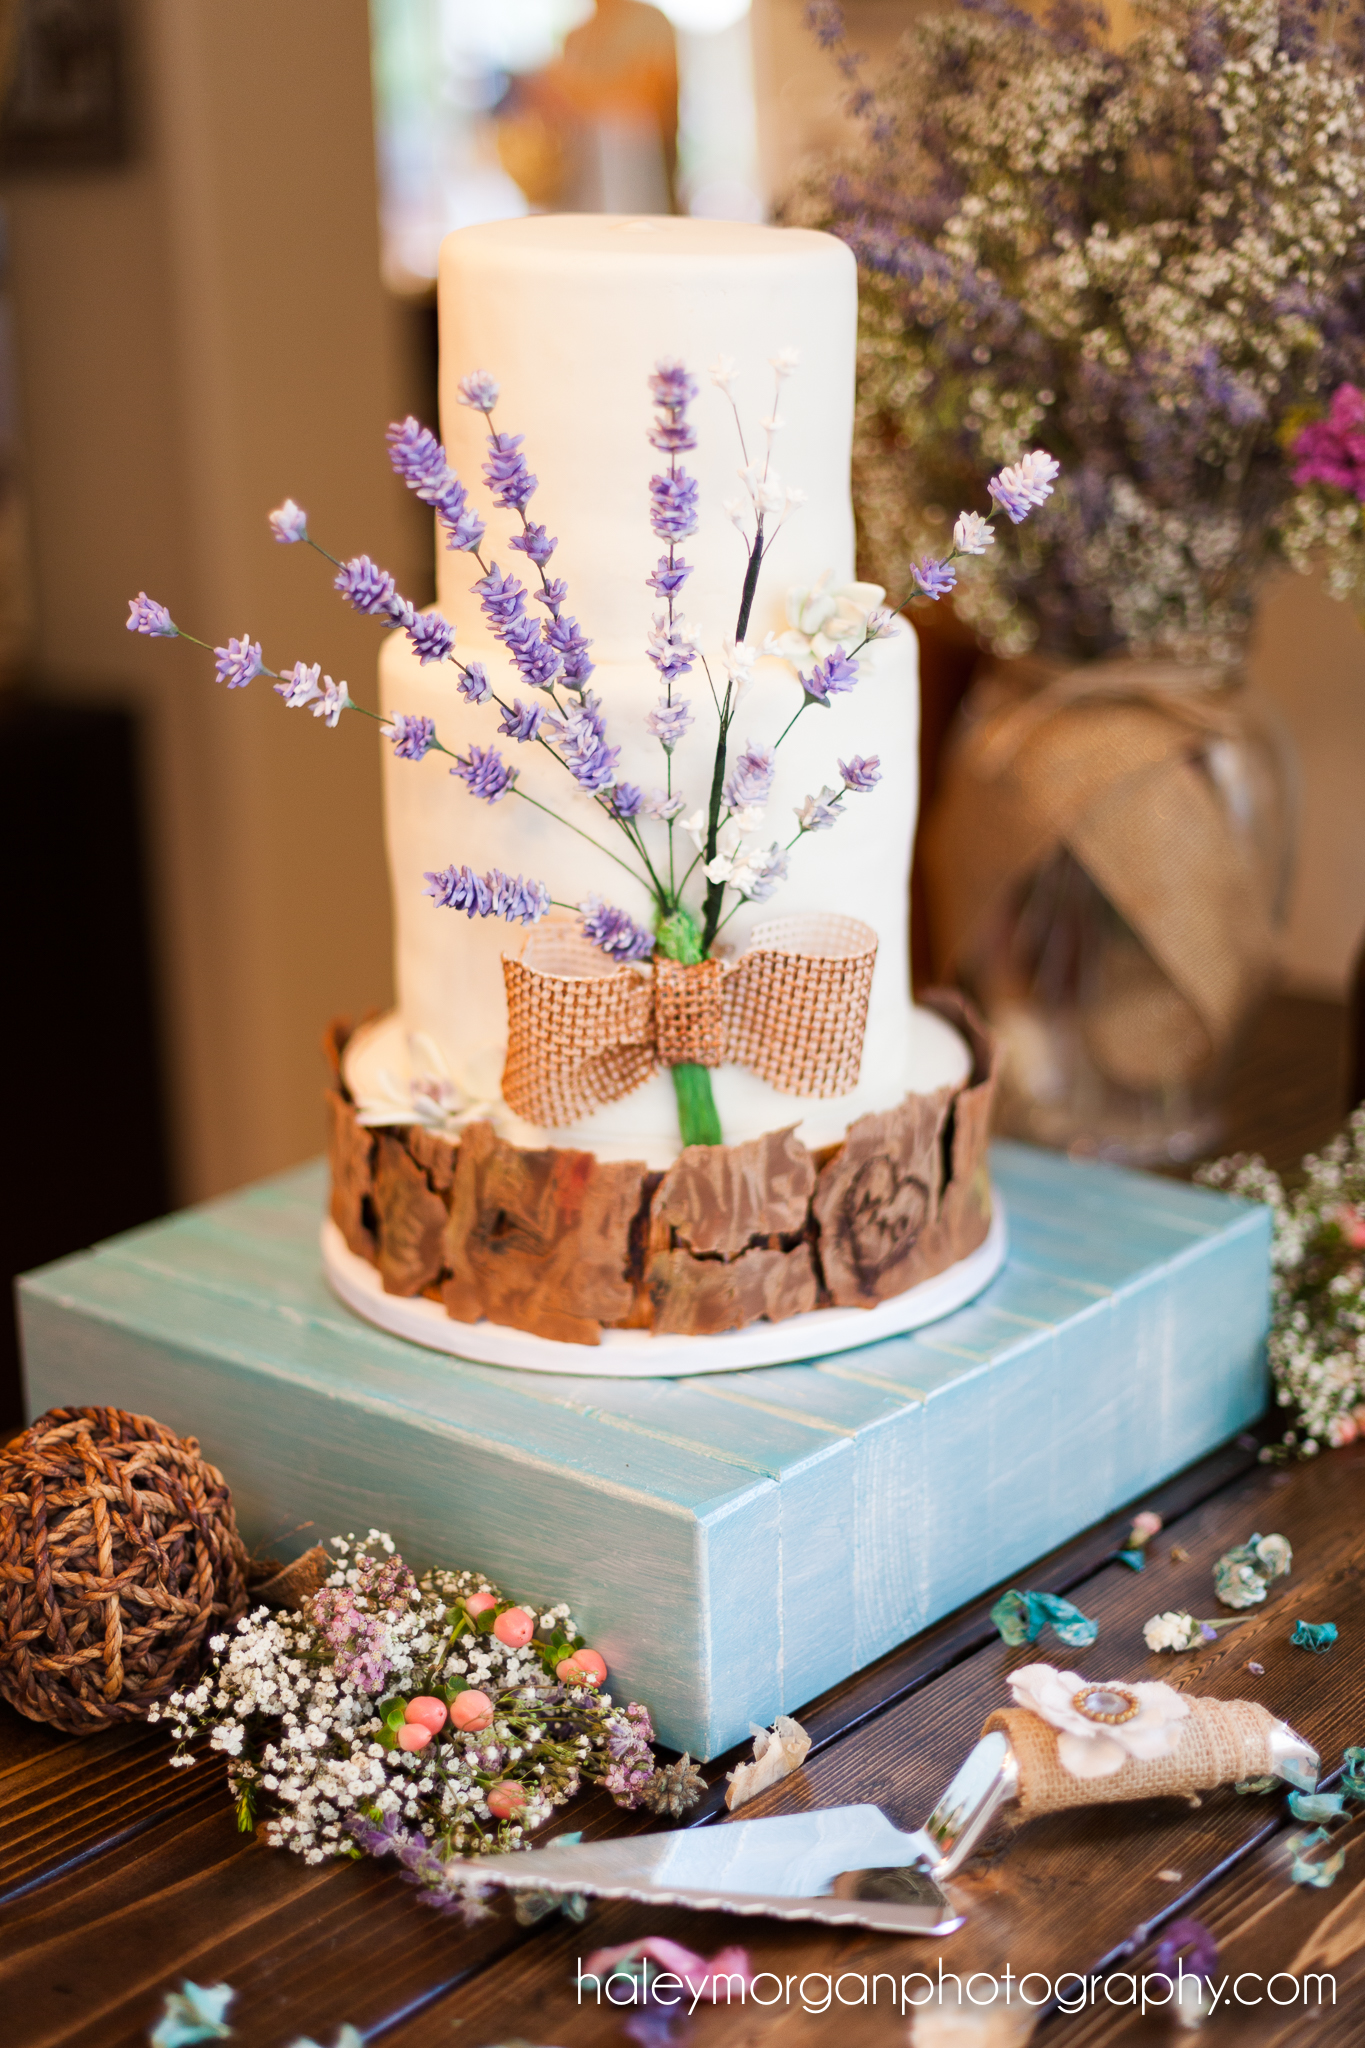 Broomfield Wedding Photographer, Broomfield Elopement Photographer, Haley Morgan Photography, Simply Sweet, The little cake llc, the little cake, kasandra raiser,